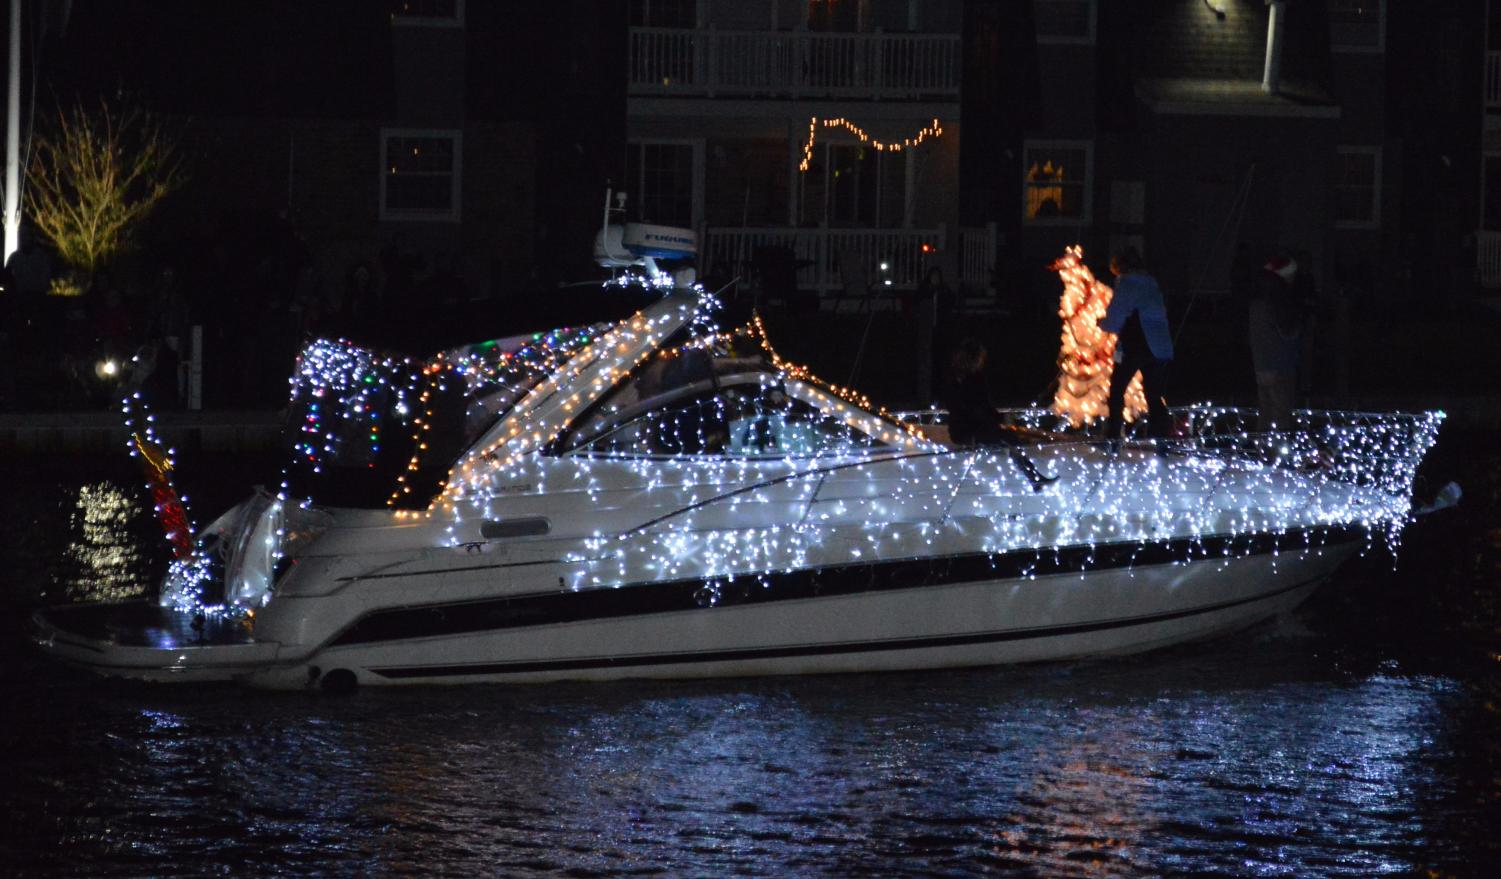 Boat decorated for the holidays